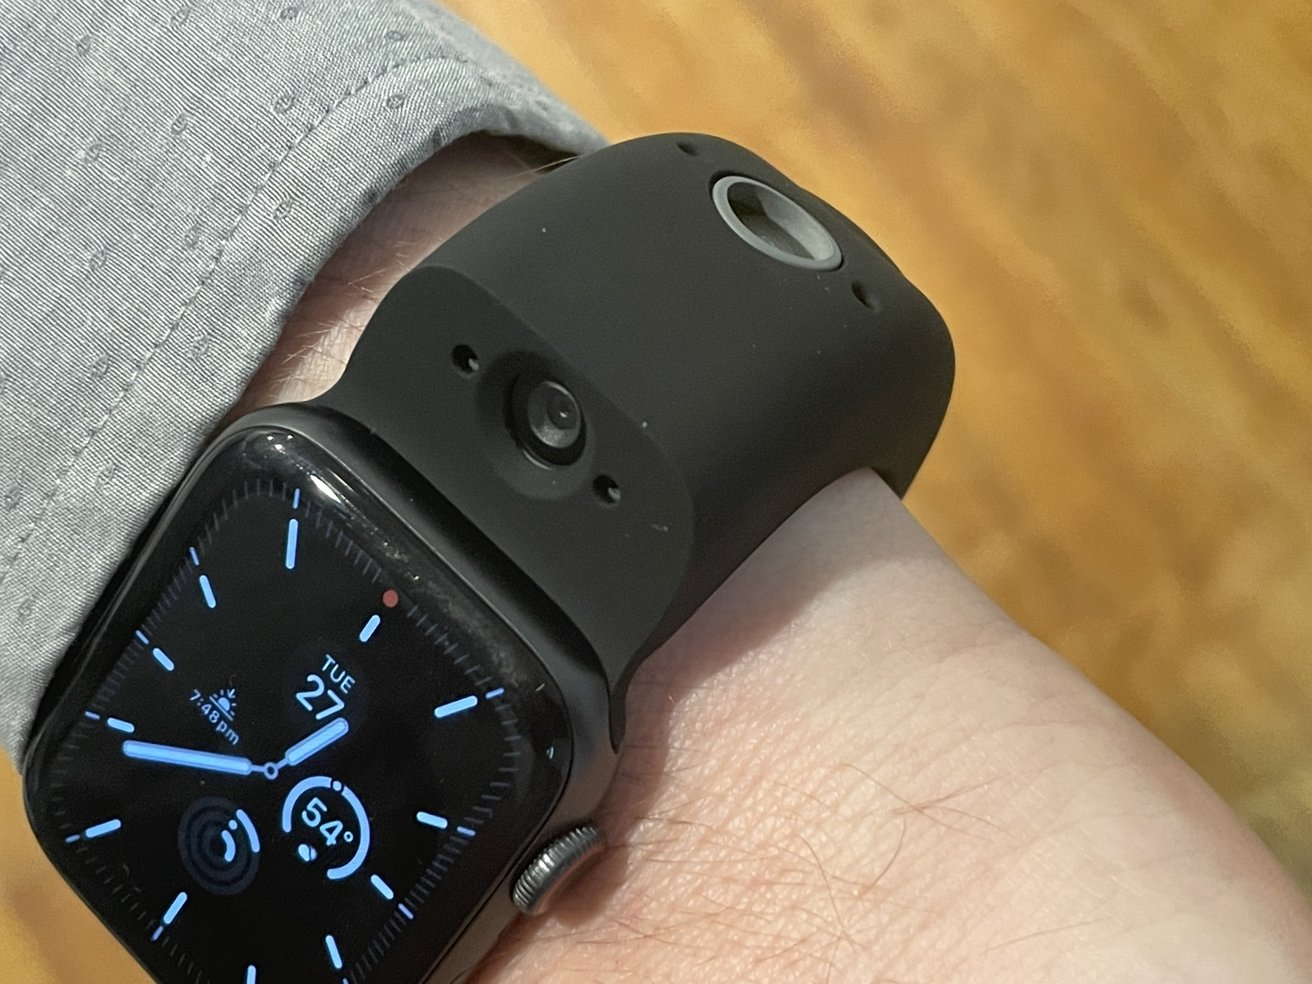 Two cameras are included in the Wristcam, to photograph yourself or something nearby.